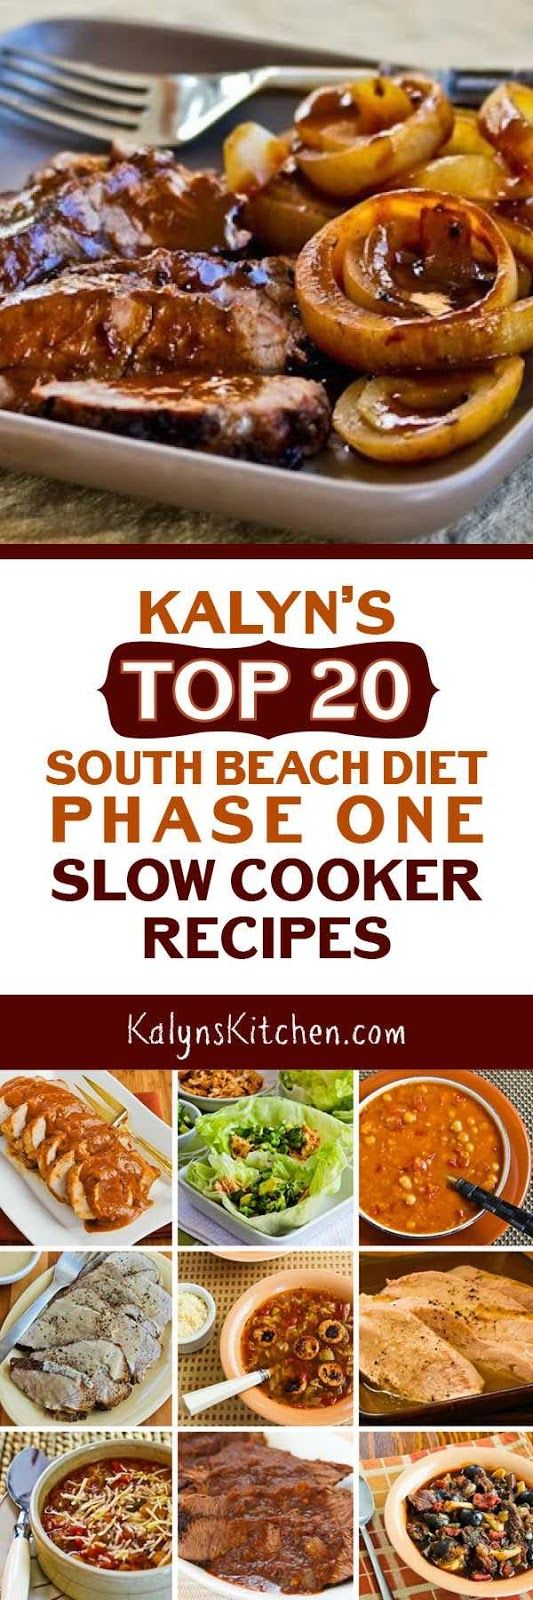 For everyone who's starting the year with more carb-conscious eating, here are my Top 20 South Beach Diet Phase One Slow Cooker Recipes. Some of these recipes use dried beans, but most of them are low-carb and some are even Paleo. [found on KalynsKitchen.com]